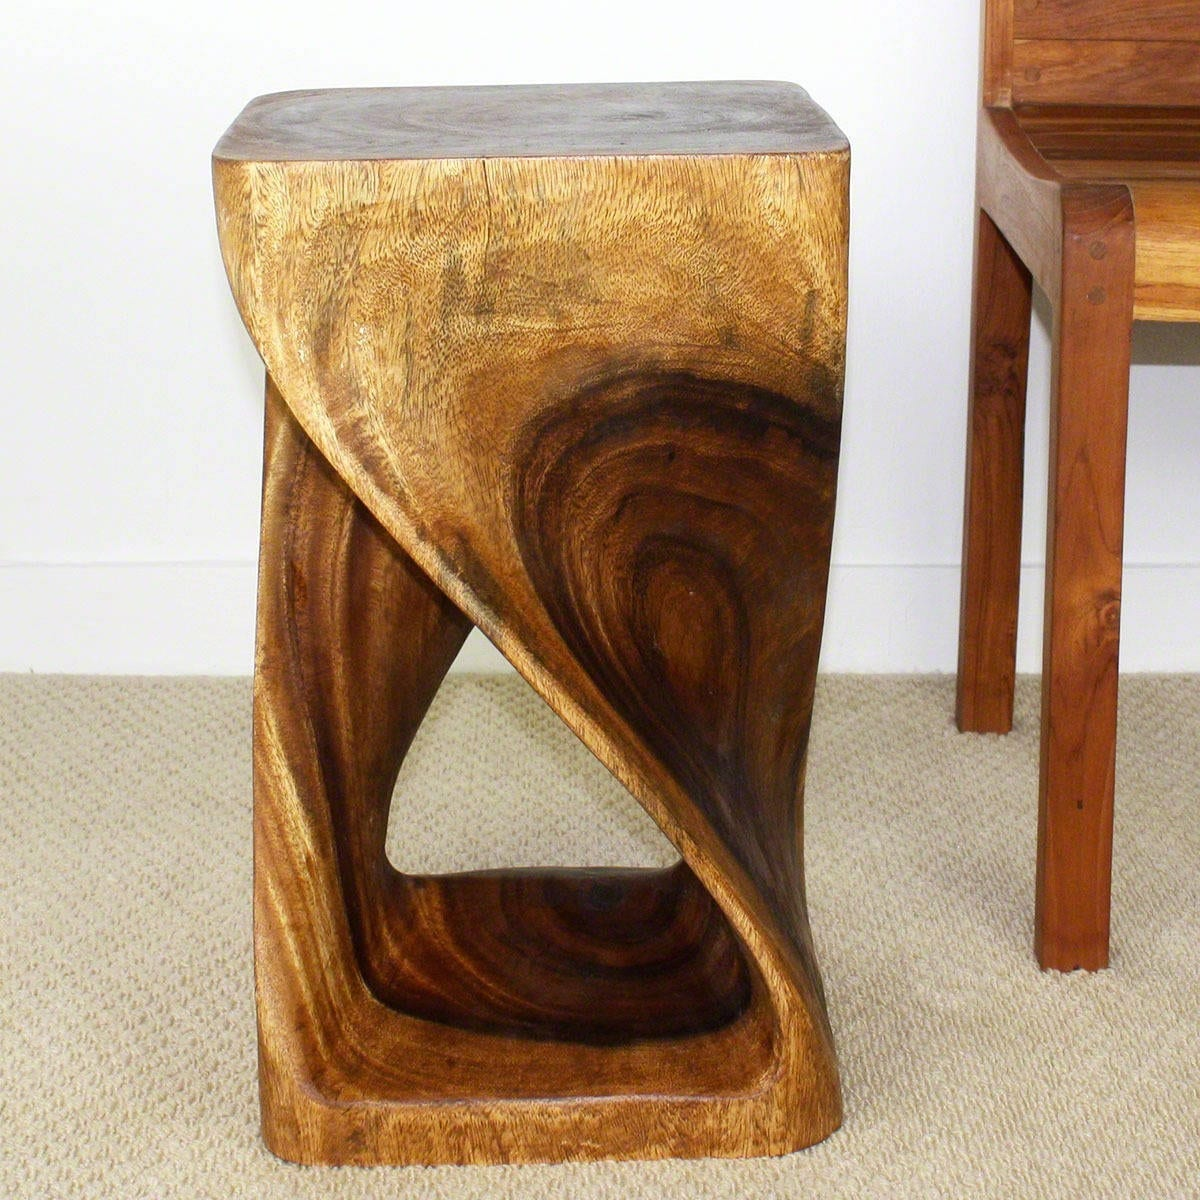 Handmade 12 Inches Square X 20 Inch Wooden Hand Carved Walnut Oil Twist Stool Thailand On Free Shipping Today 5221190